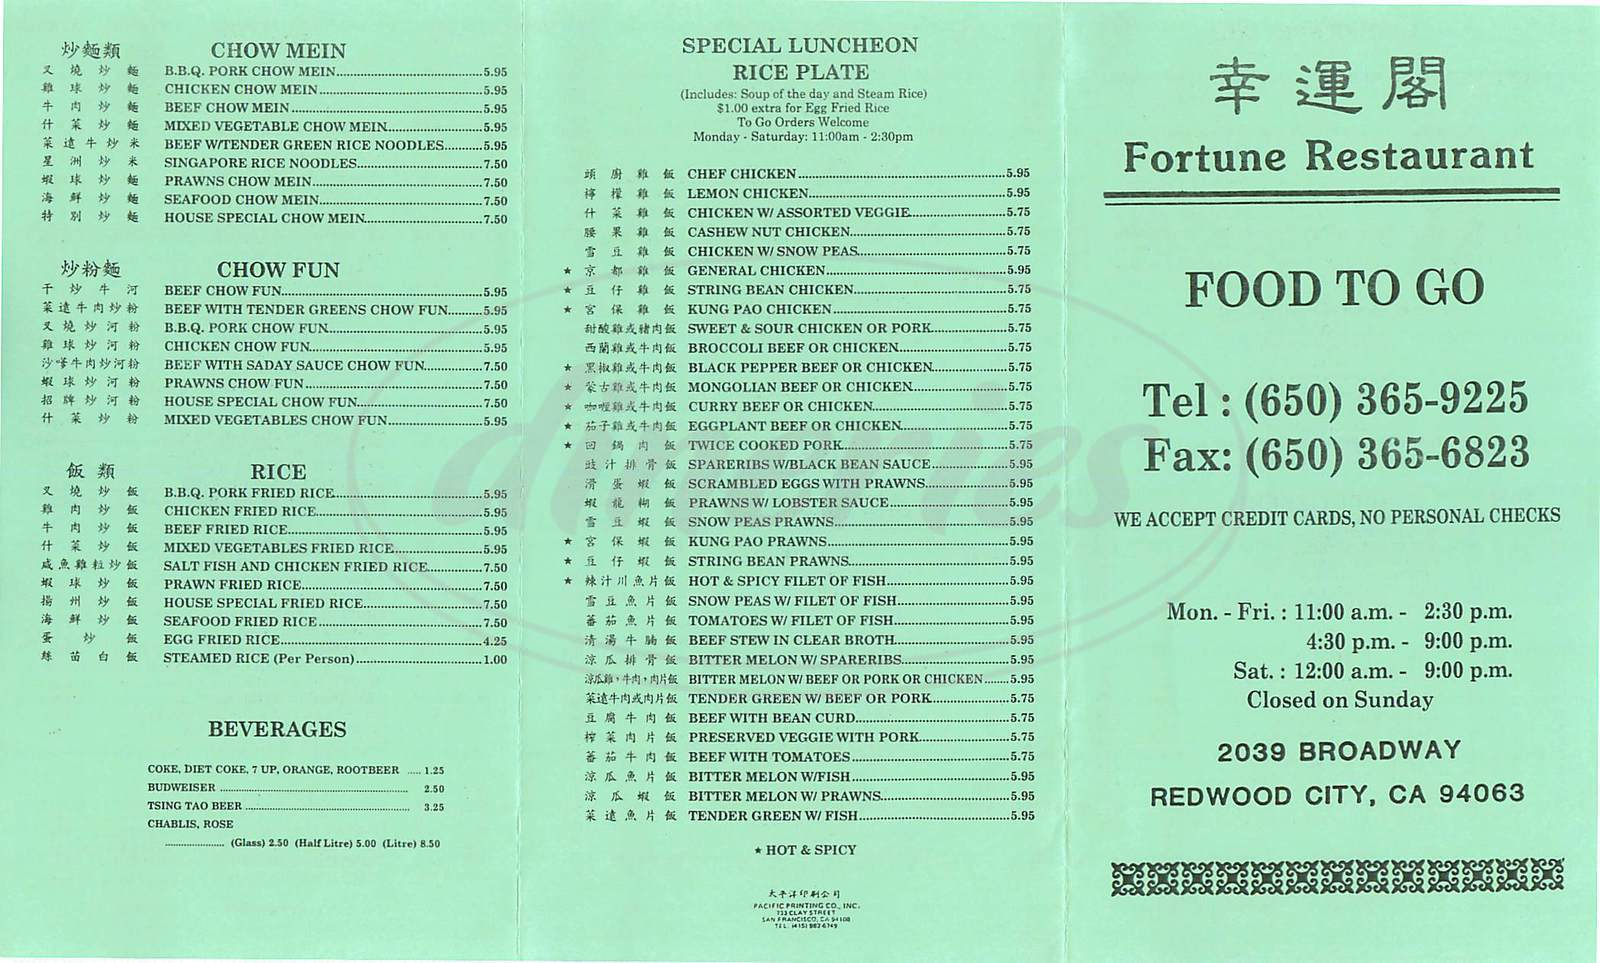 menu for Fortune Restaurant